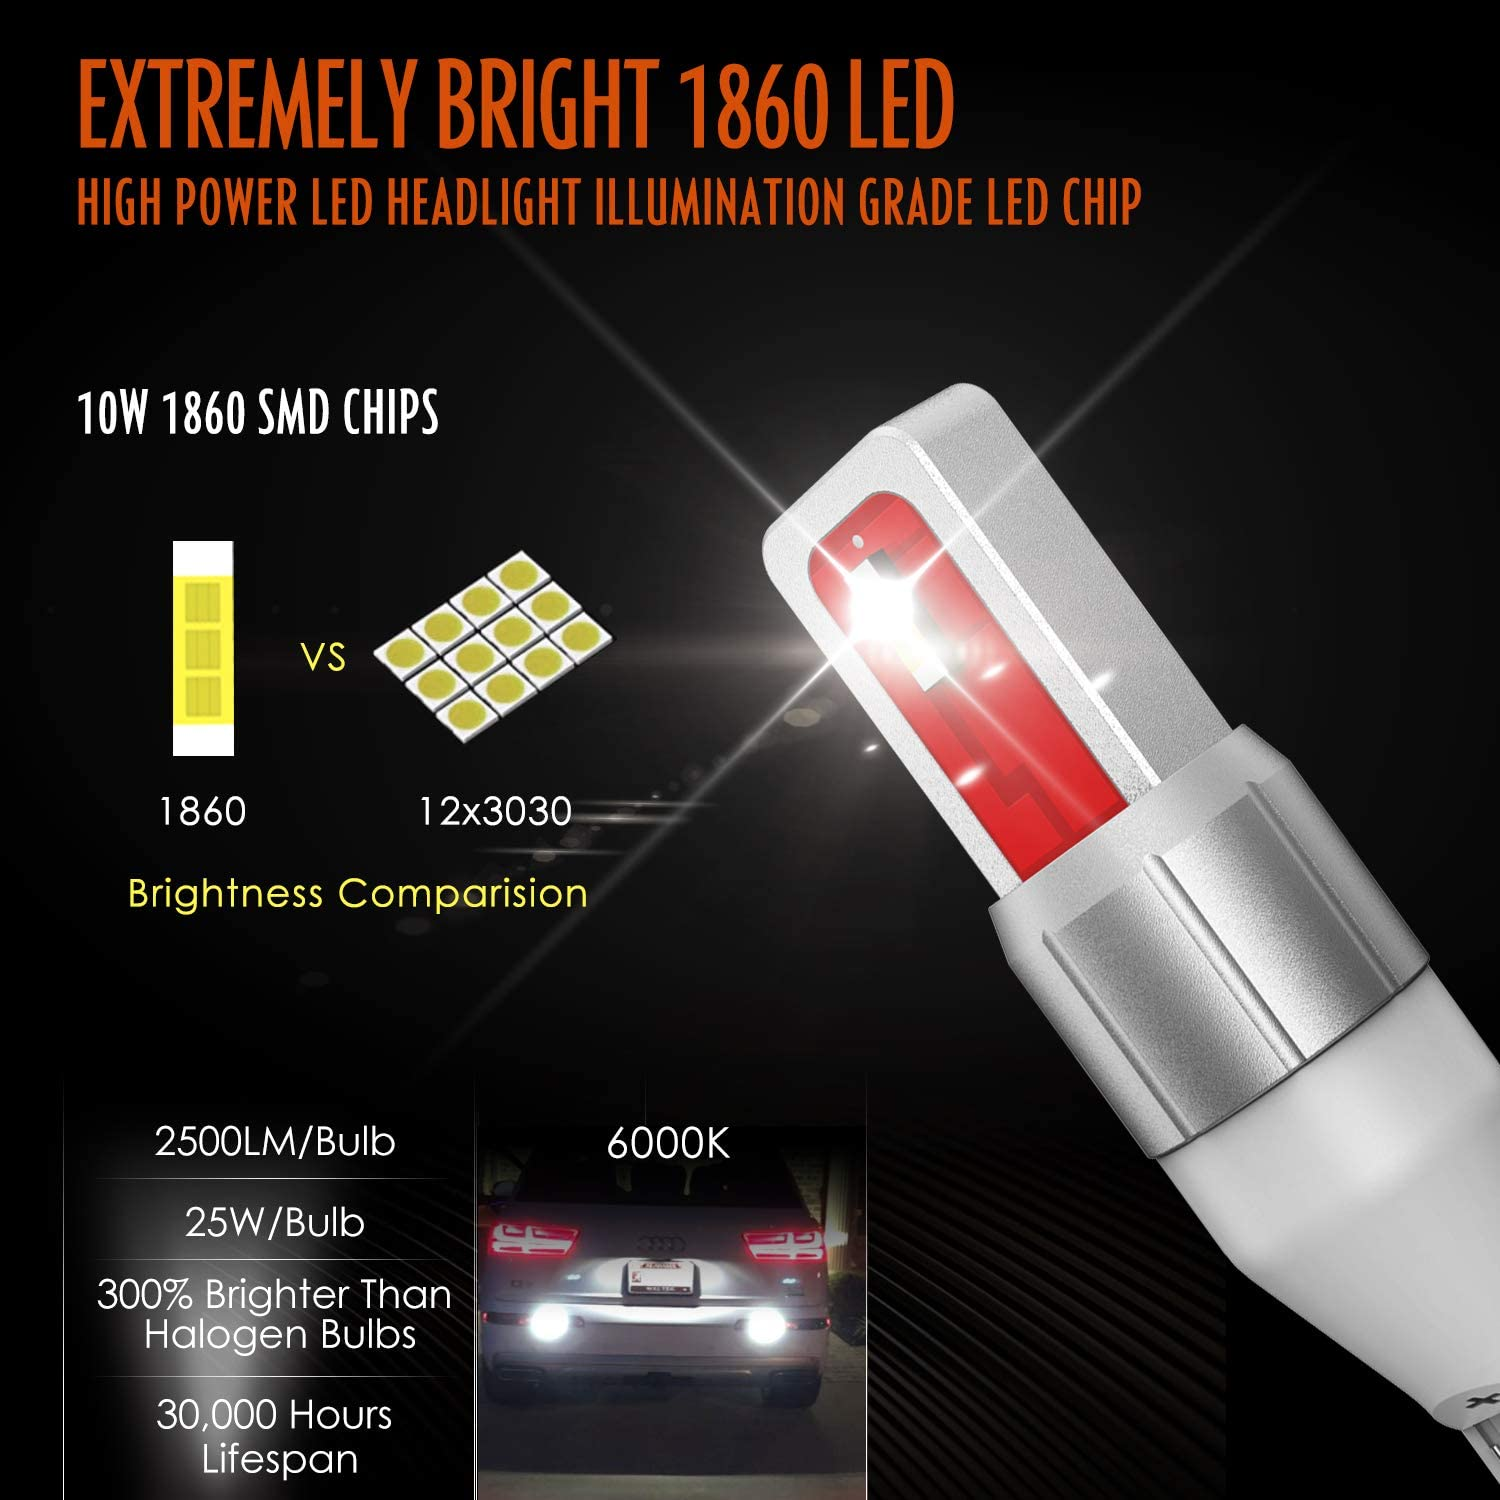 Pulilang T15 921 LED Reverse Light Bulbs Pack of 2 40W 5000LM 6000K Xenon White Extremely Bright CSP 1860 SMD 912 T16 906 904 902 W16W Backup Light Bulbs 12-24V No-Polarity For Cars Trucks